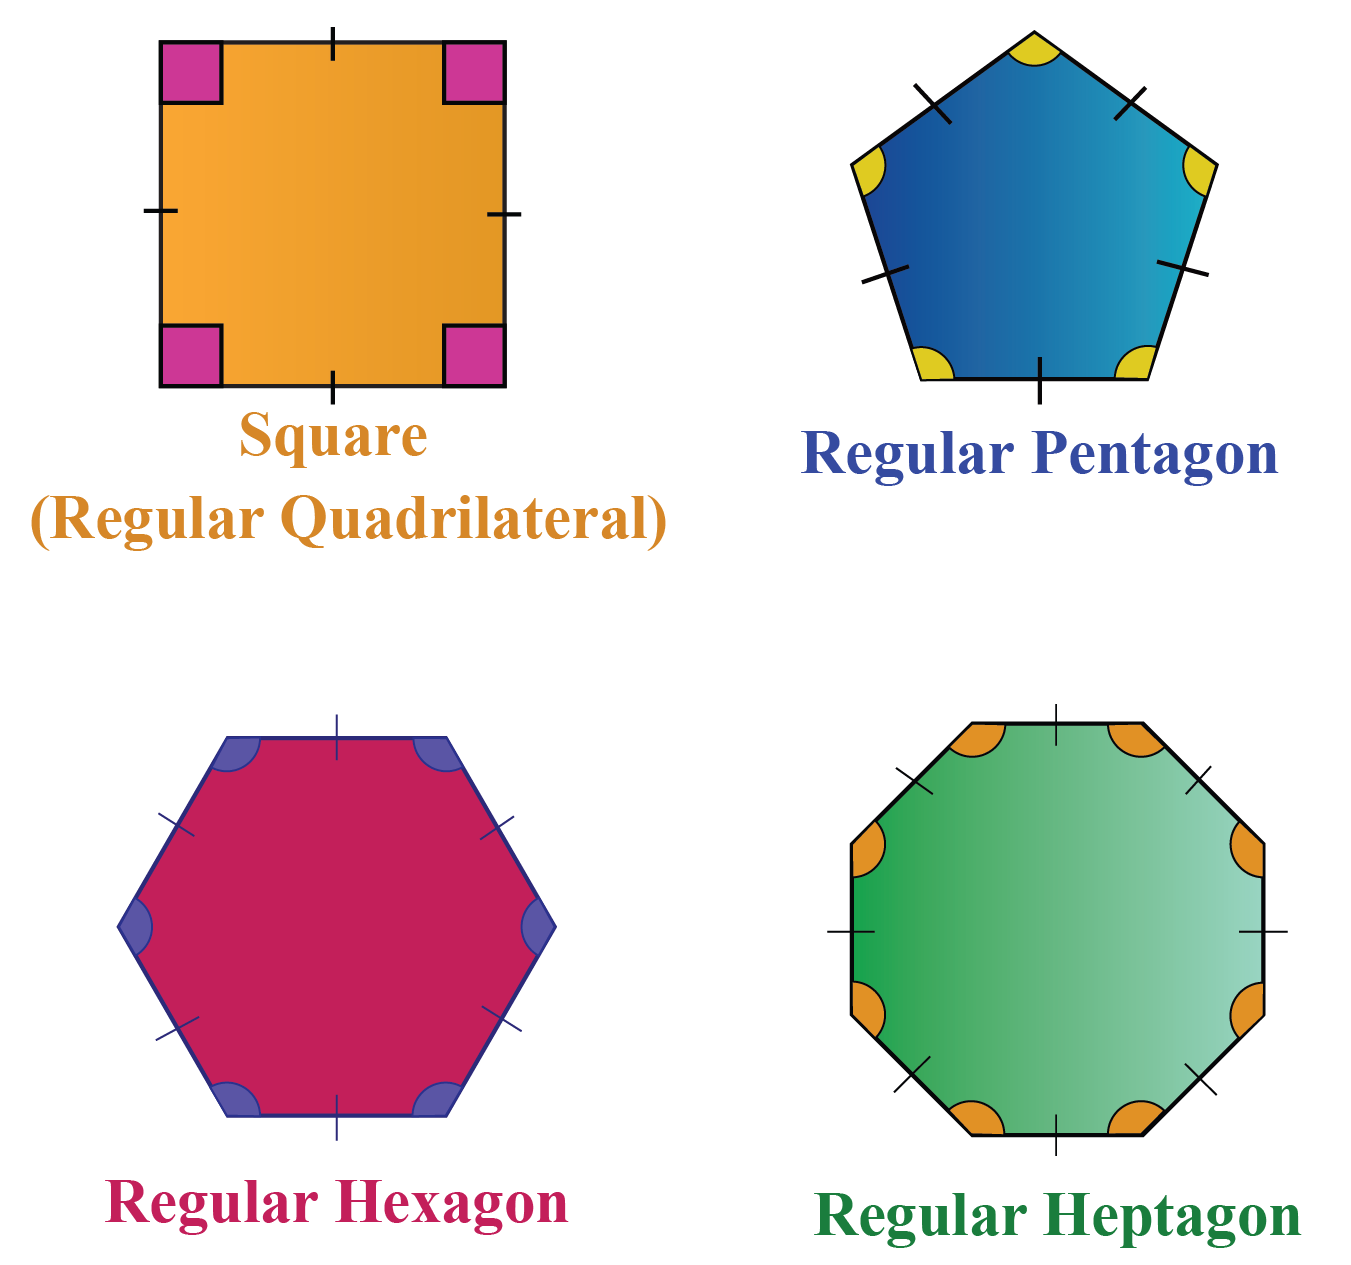 Finding the interior angles of regular polygons